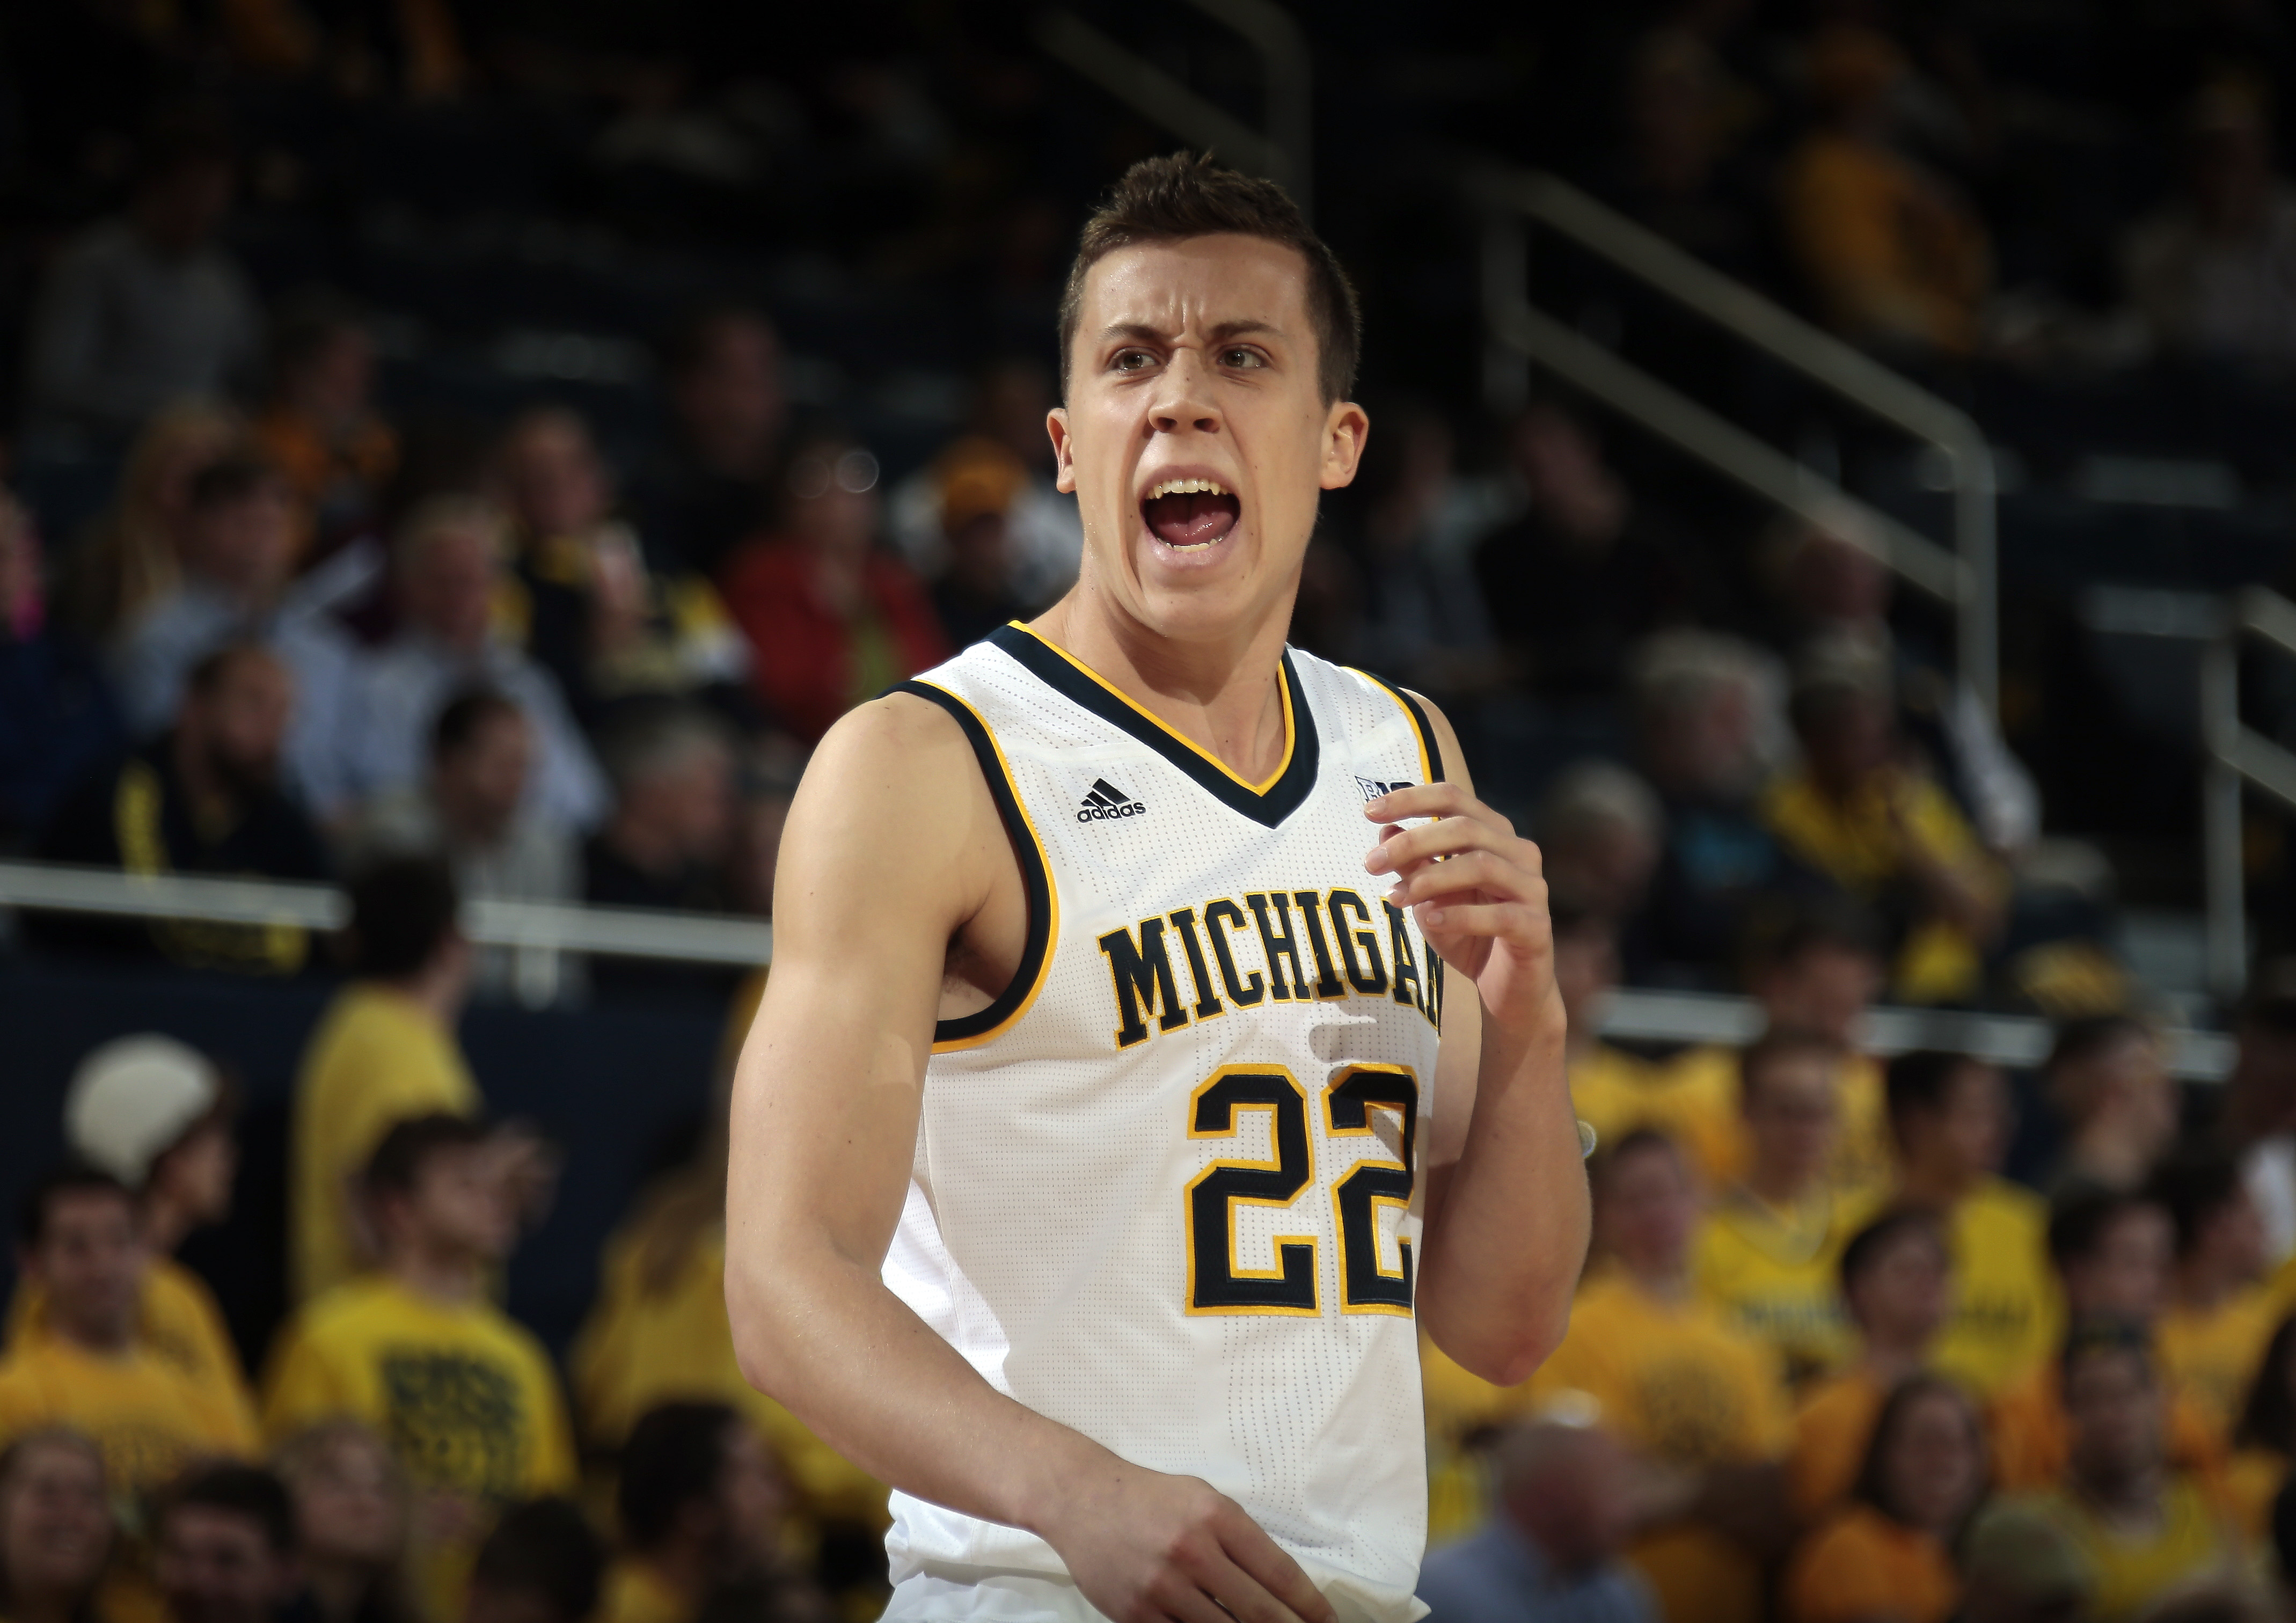 Michigan guard Duncan Robinson (22) reacts after a play in the first half of an NCAA college basketball game against Elon at Crisler Center in Ann Arbor, Mich., Monday, Nov. 16, 2015.  (AP Photo/Tony Ding)